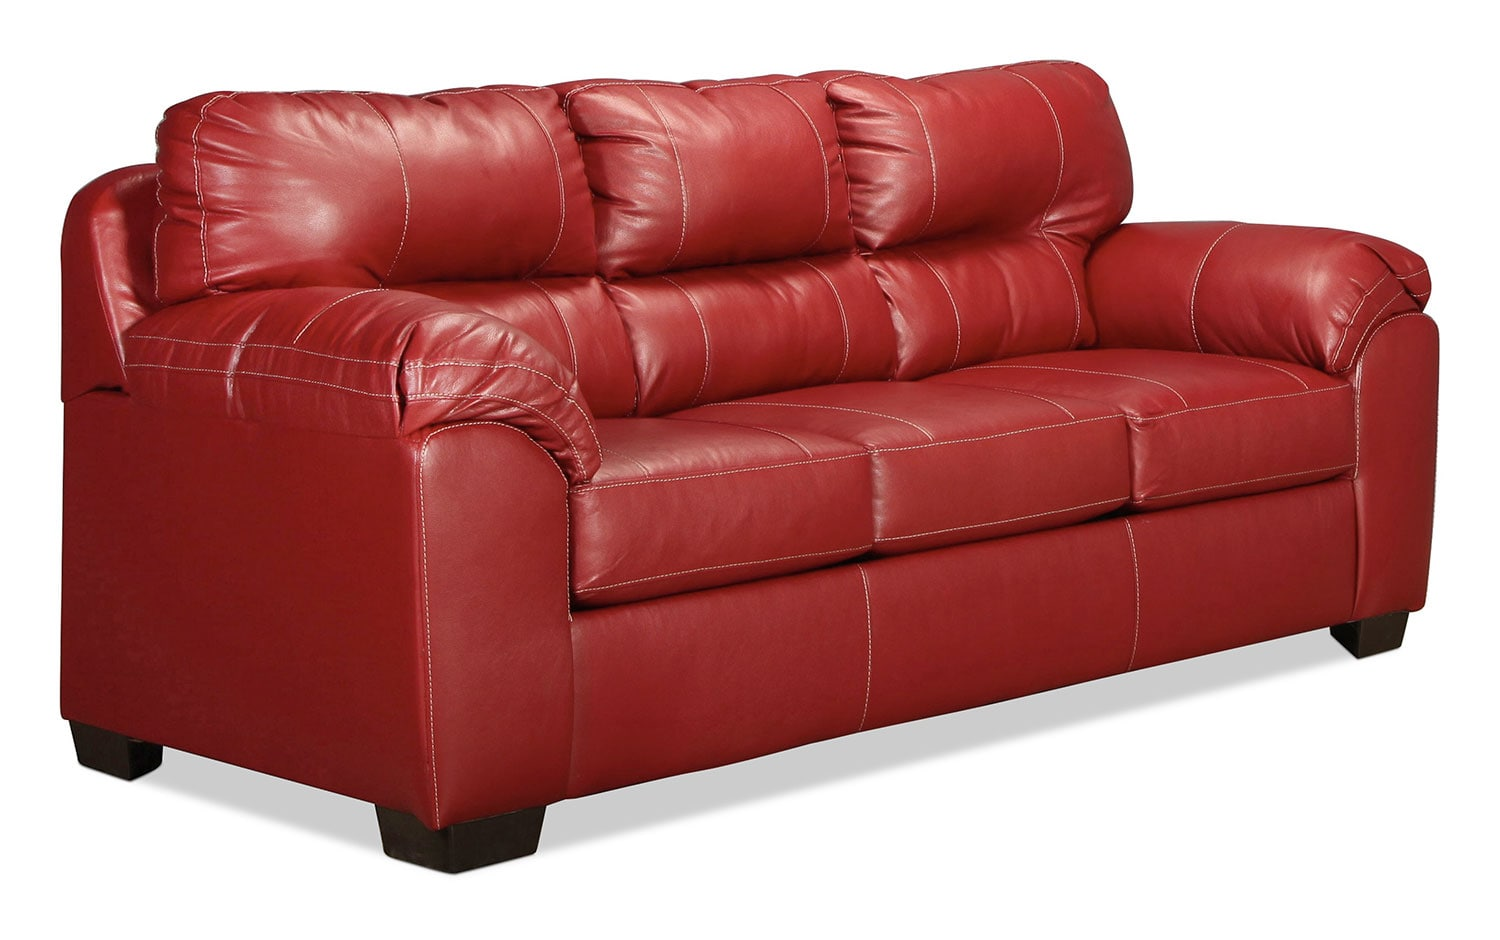 rigley queen sleeper sofa red levin furniture. Black Bedroom Furniture Sets. Home Design Ideas